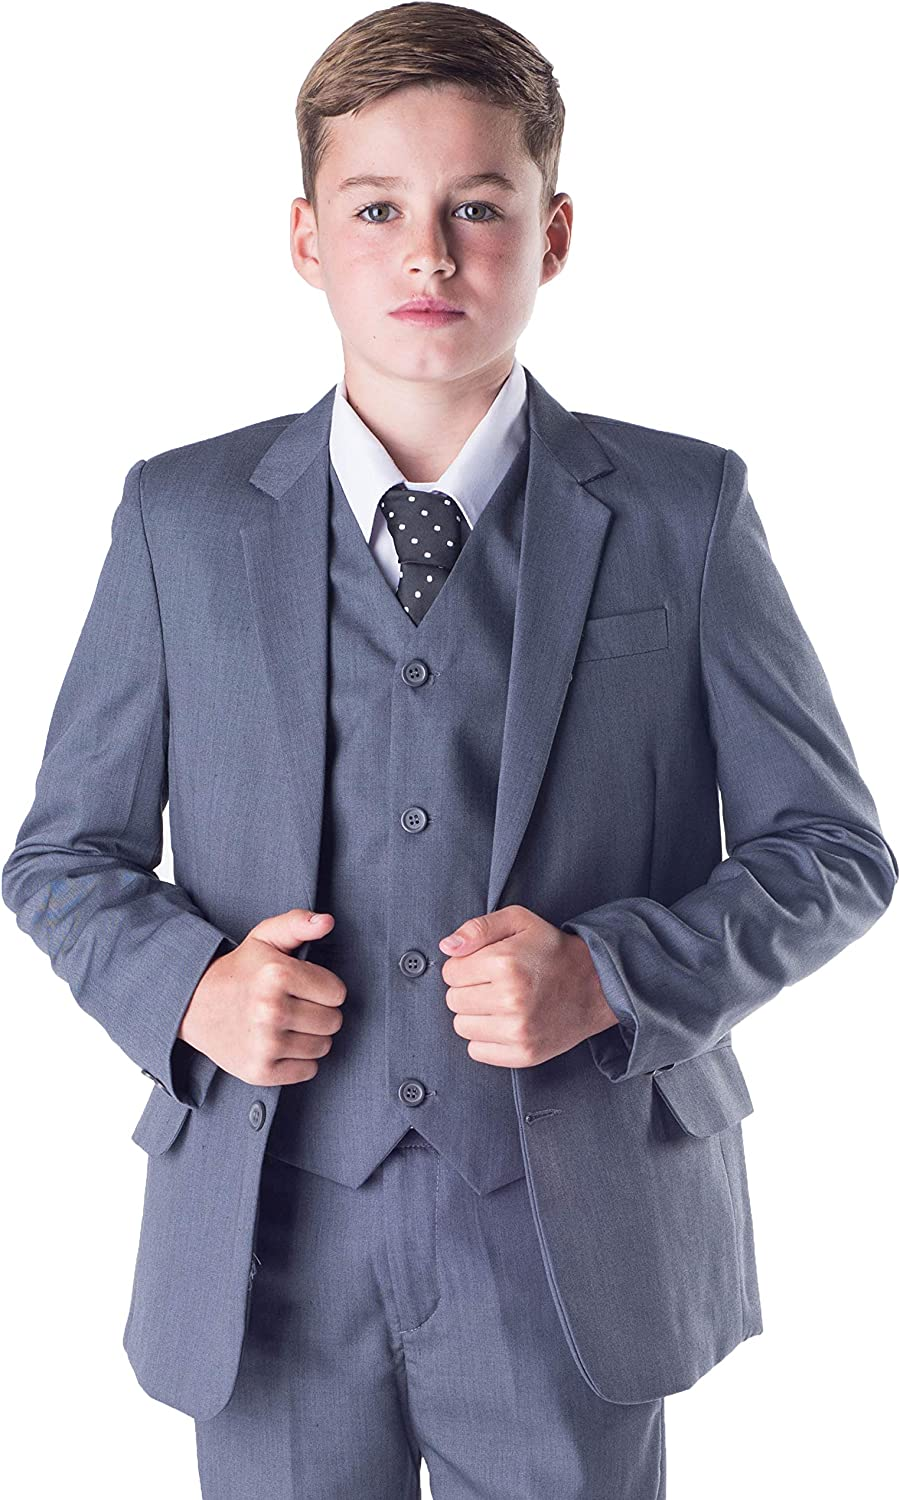 Boys Suits Romario Boys Grey Suit 5 Piece Wedding Party Formal Outfit Prom